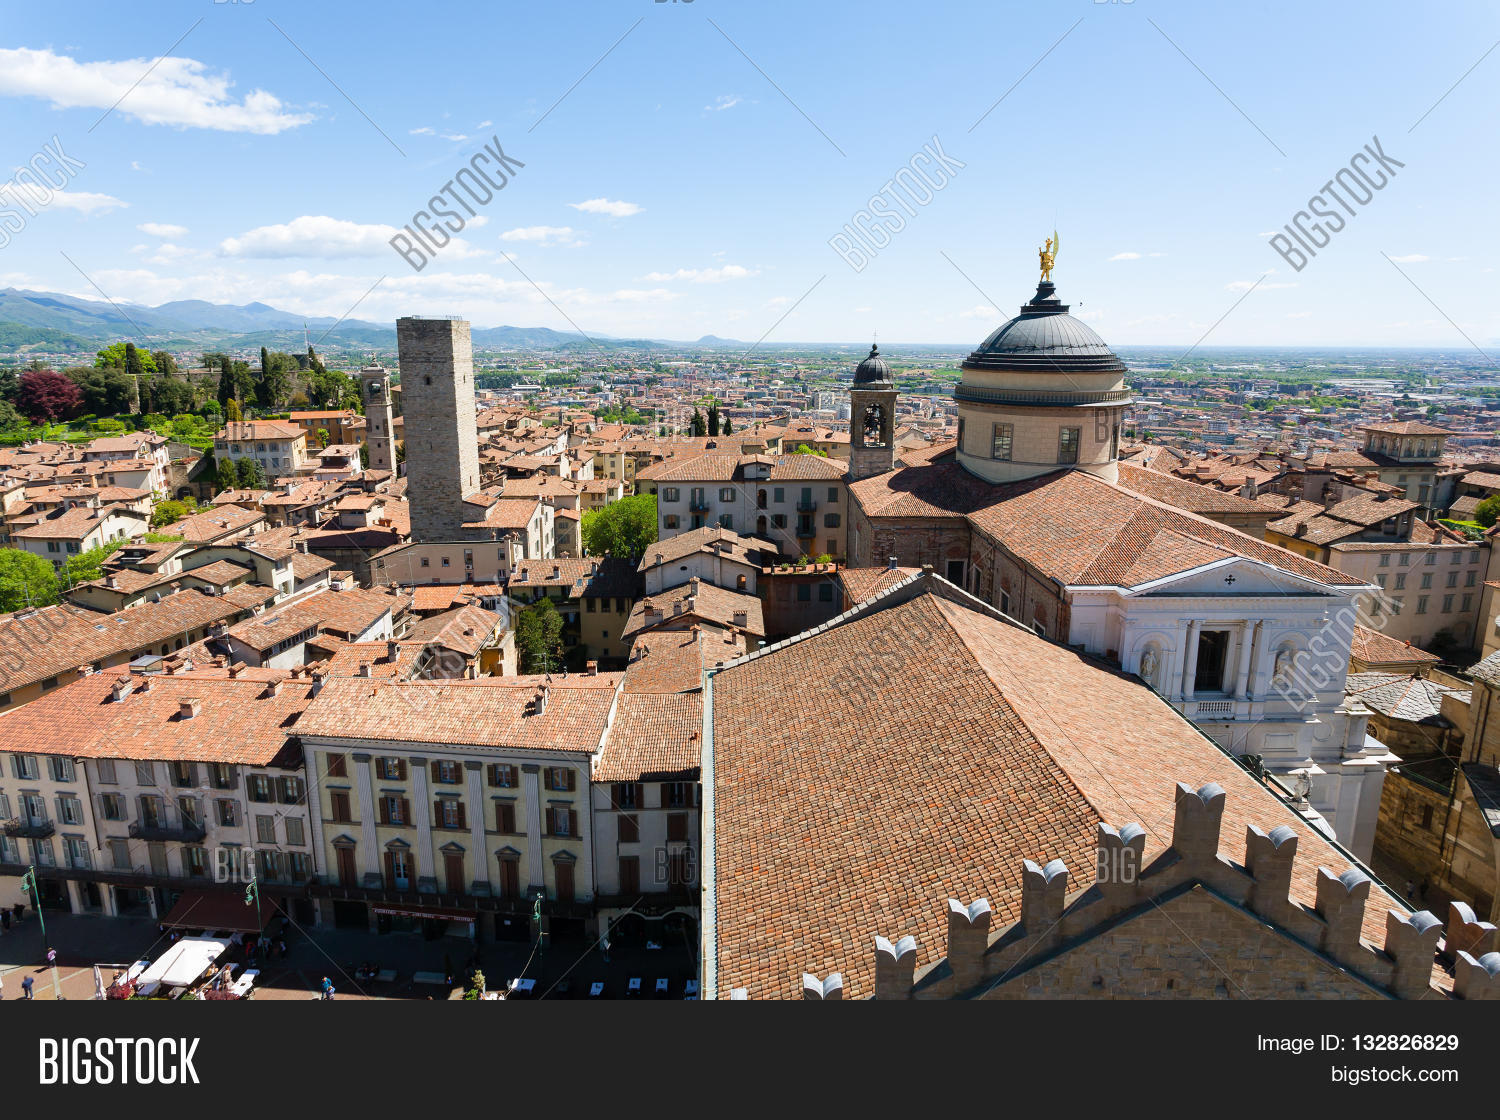 Saint,Mary,Major,alta,architectural,architecture,beautiful,bergamo,building,cathedral,center,church,citta,city,cityscape,column,decorative,duomo,europe,historic,home,house,italian,italy,landmark,landscape,lombardy,medieval,monument,old,outdoor,palace,panorama,place,religion,residential,roof,santa,maria,maggiore,square,street,touristic,tower,town,townscape,travel,tree,upper,urban,view,vintage